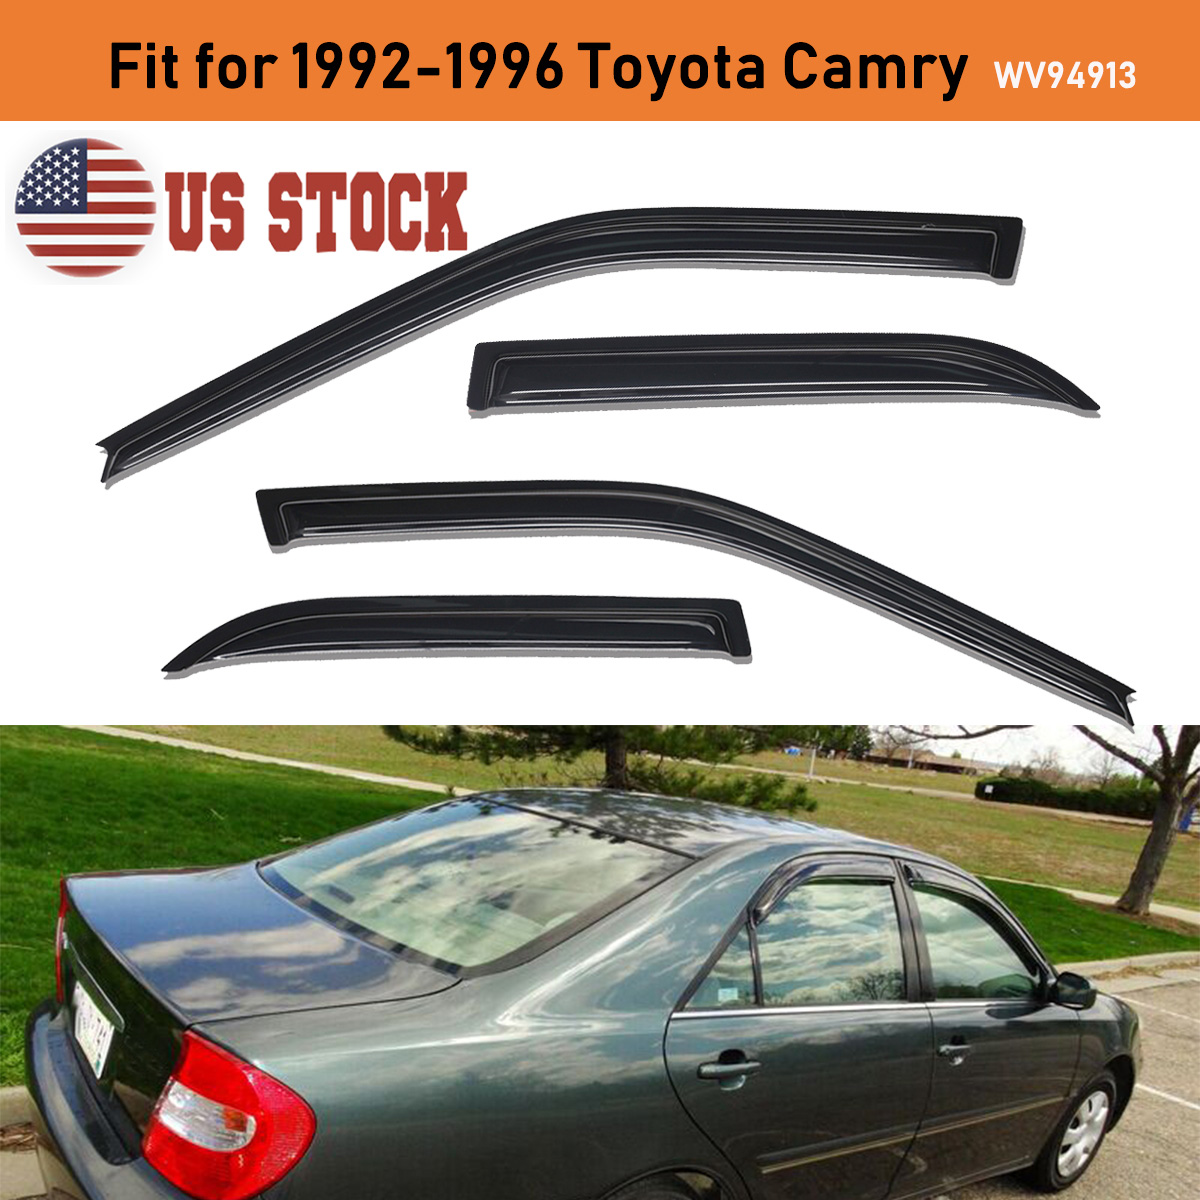 Lightronic Vent Shades Side Window Deflector for 2002-2006 Toyota Camry 4Pcs Set